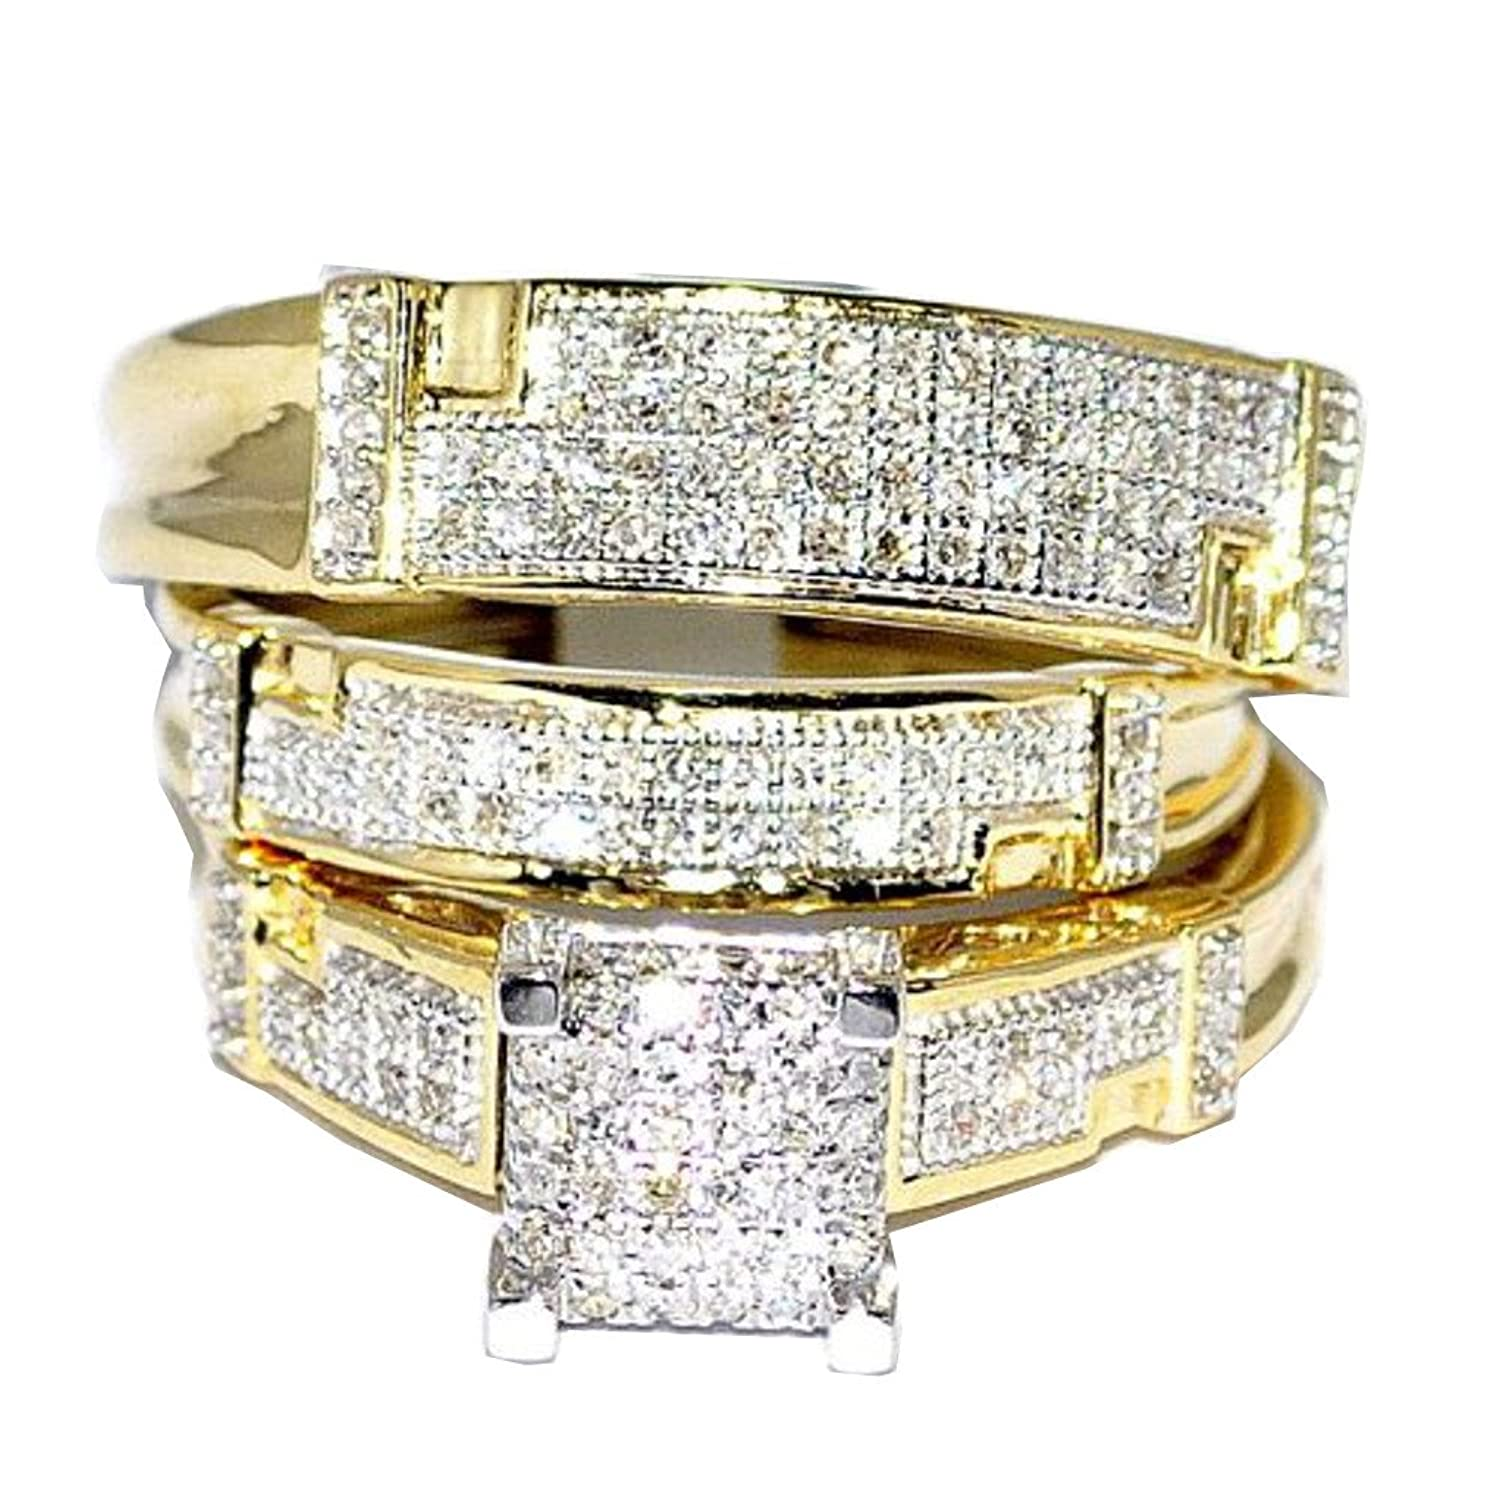 amazoncom yellow gold trio wedding set mens women rings real 12cttw diamonds pave i2i3 clarity ij color jewelry - Gold Wedding Rings For Men